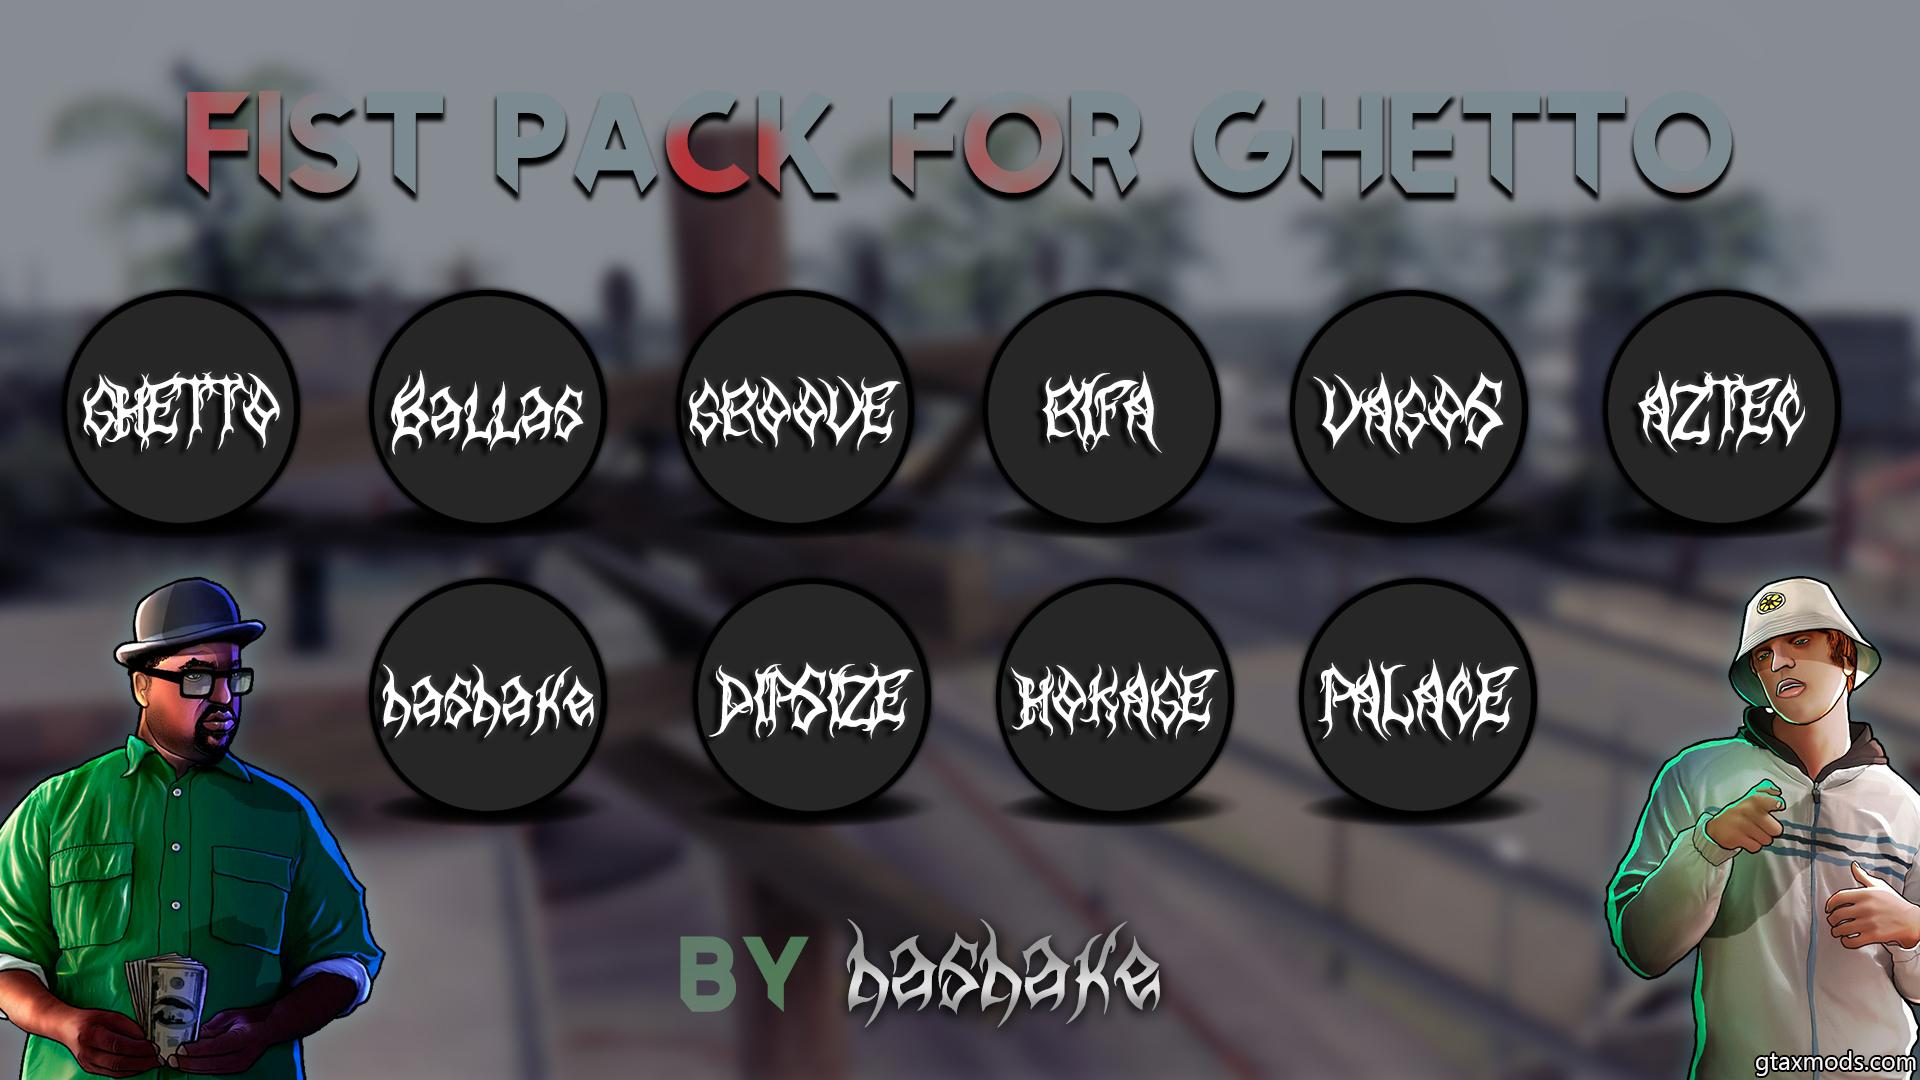 Fist pack for GHETTO by hashake